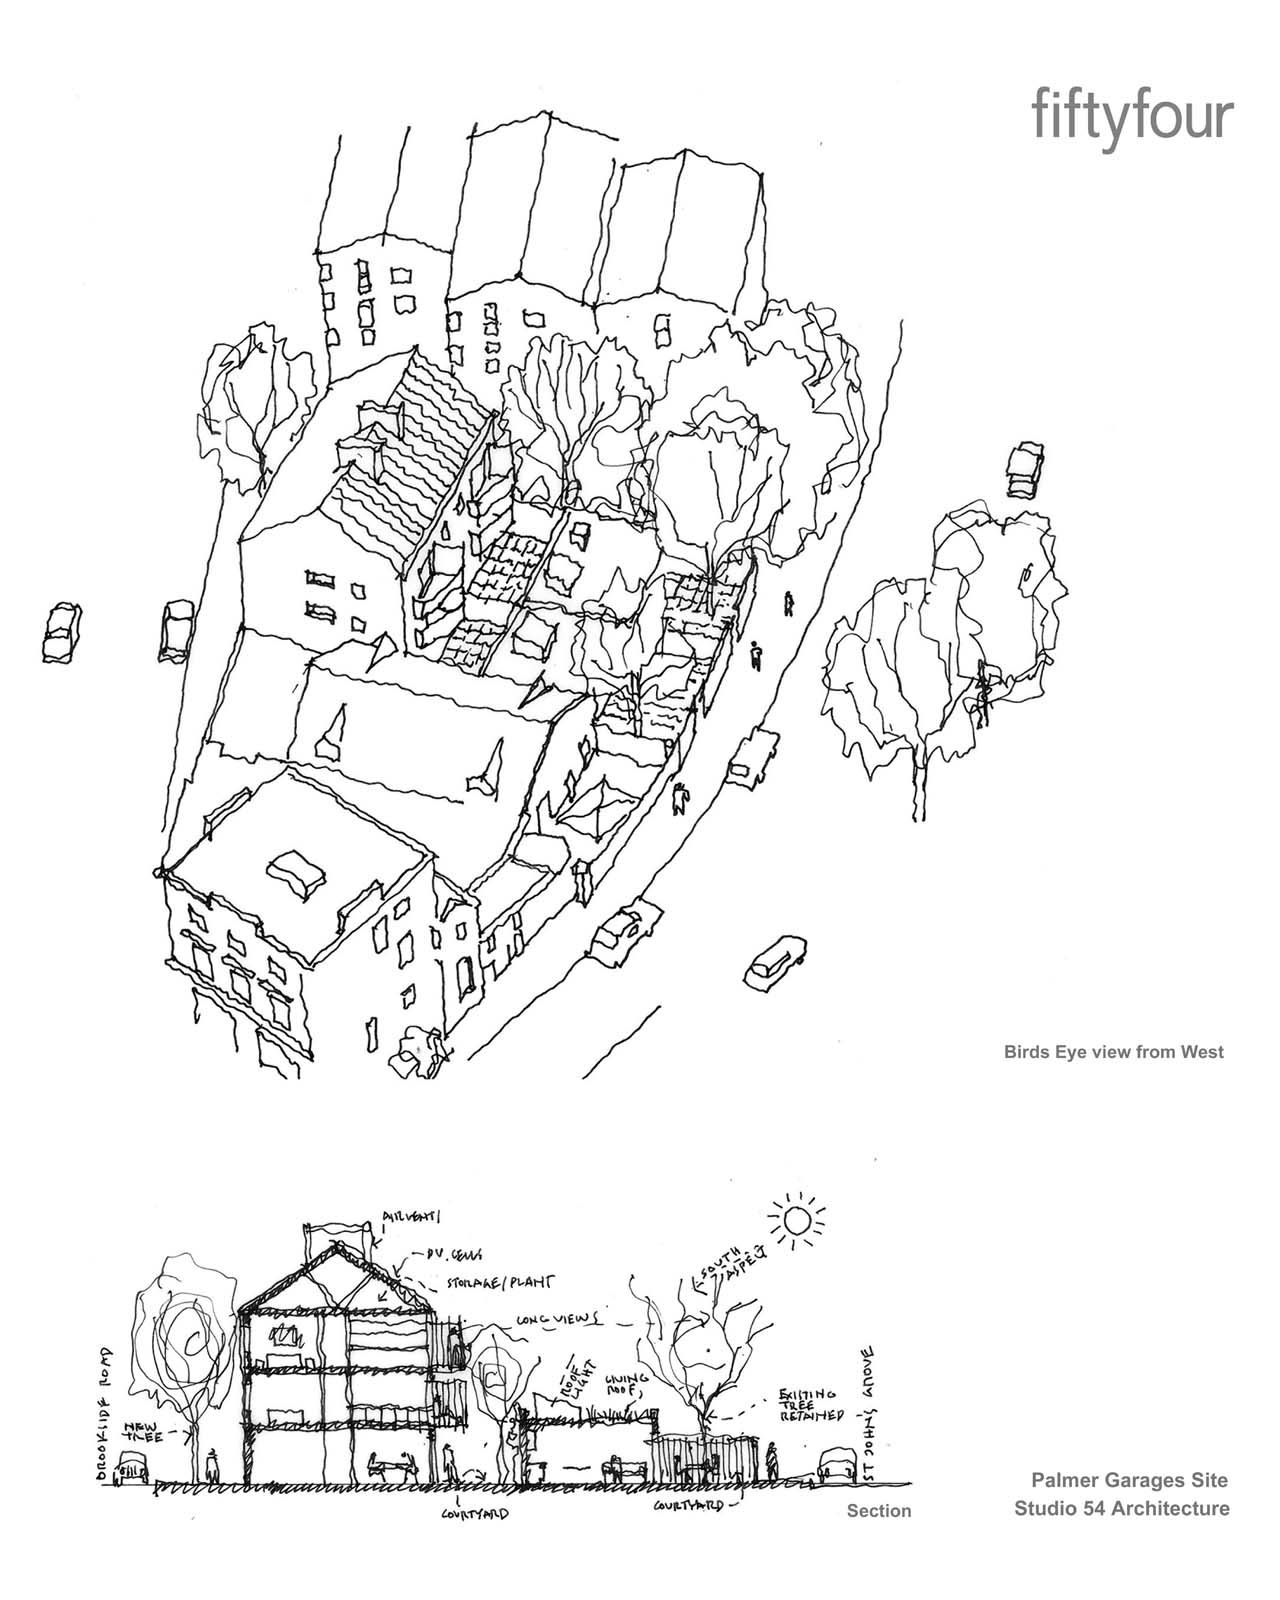 The Housing Legacy Of George Peabody Uncube Auto Chart Automobile Illustration Under Hood Diagram Car Palmer Garages Same Site Different Proposal Ndash Bynbspstudio 54 Architects